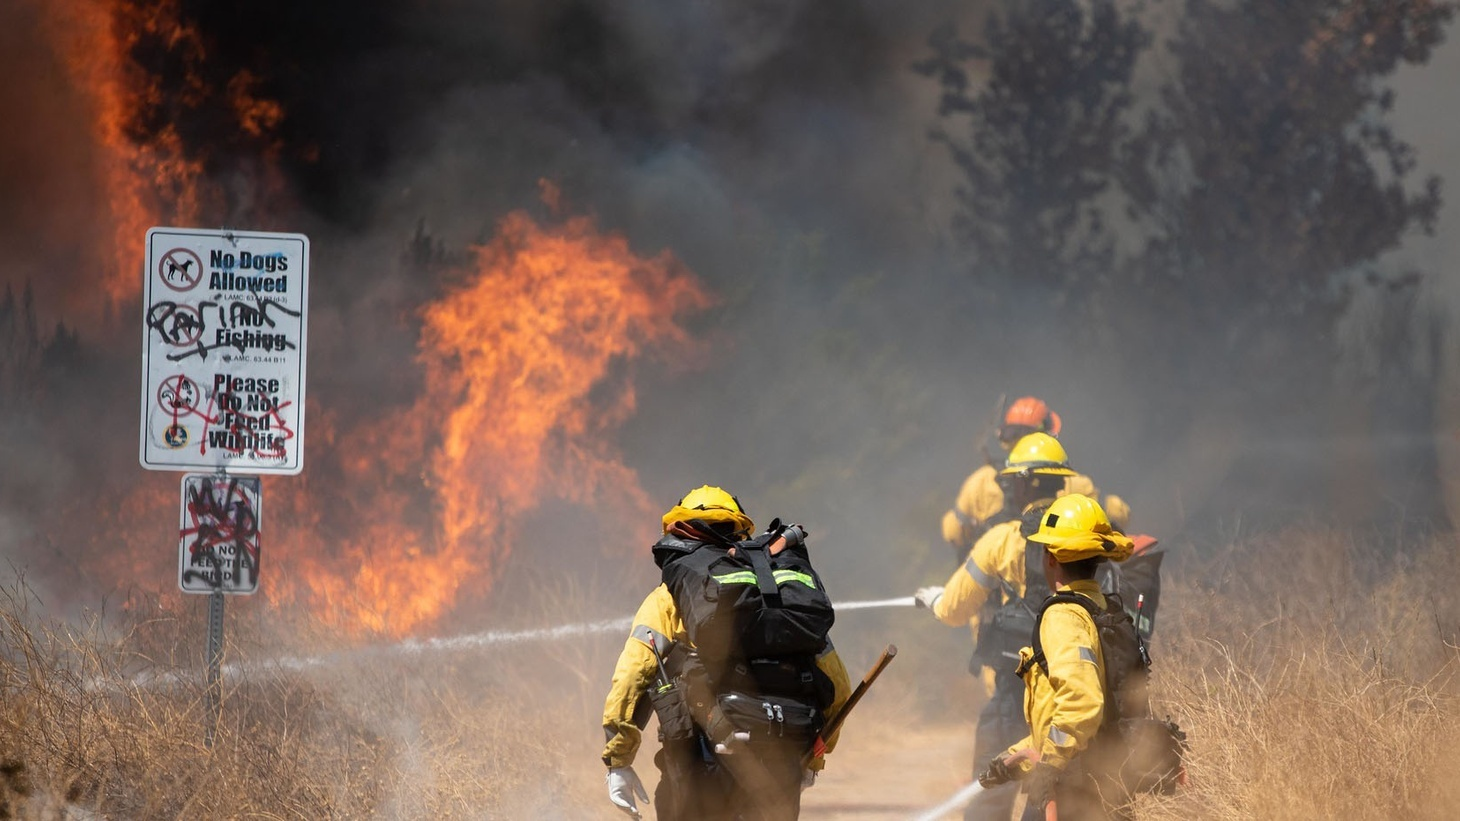 More than 100 firefighters battle the intensely hot weather to extinguish the fire in the Sepulveda Basin in California, United States on September 7, 2020.